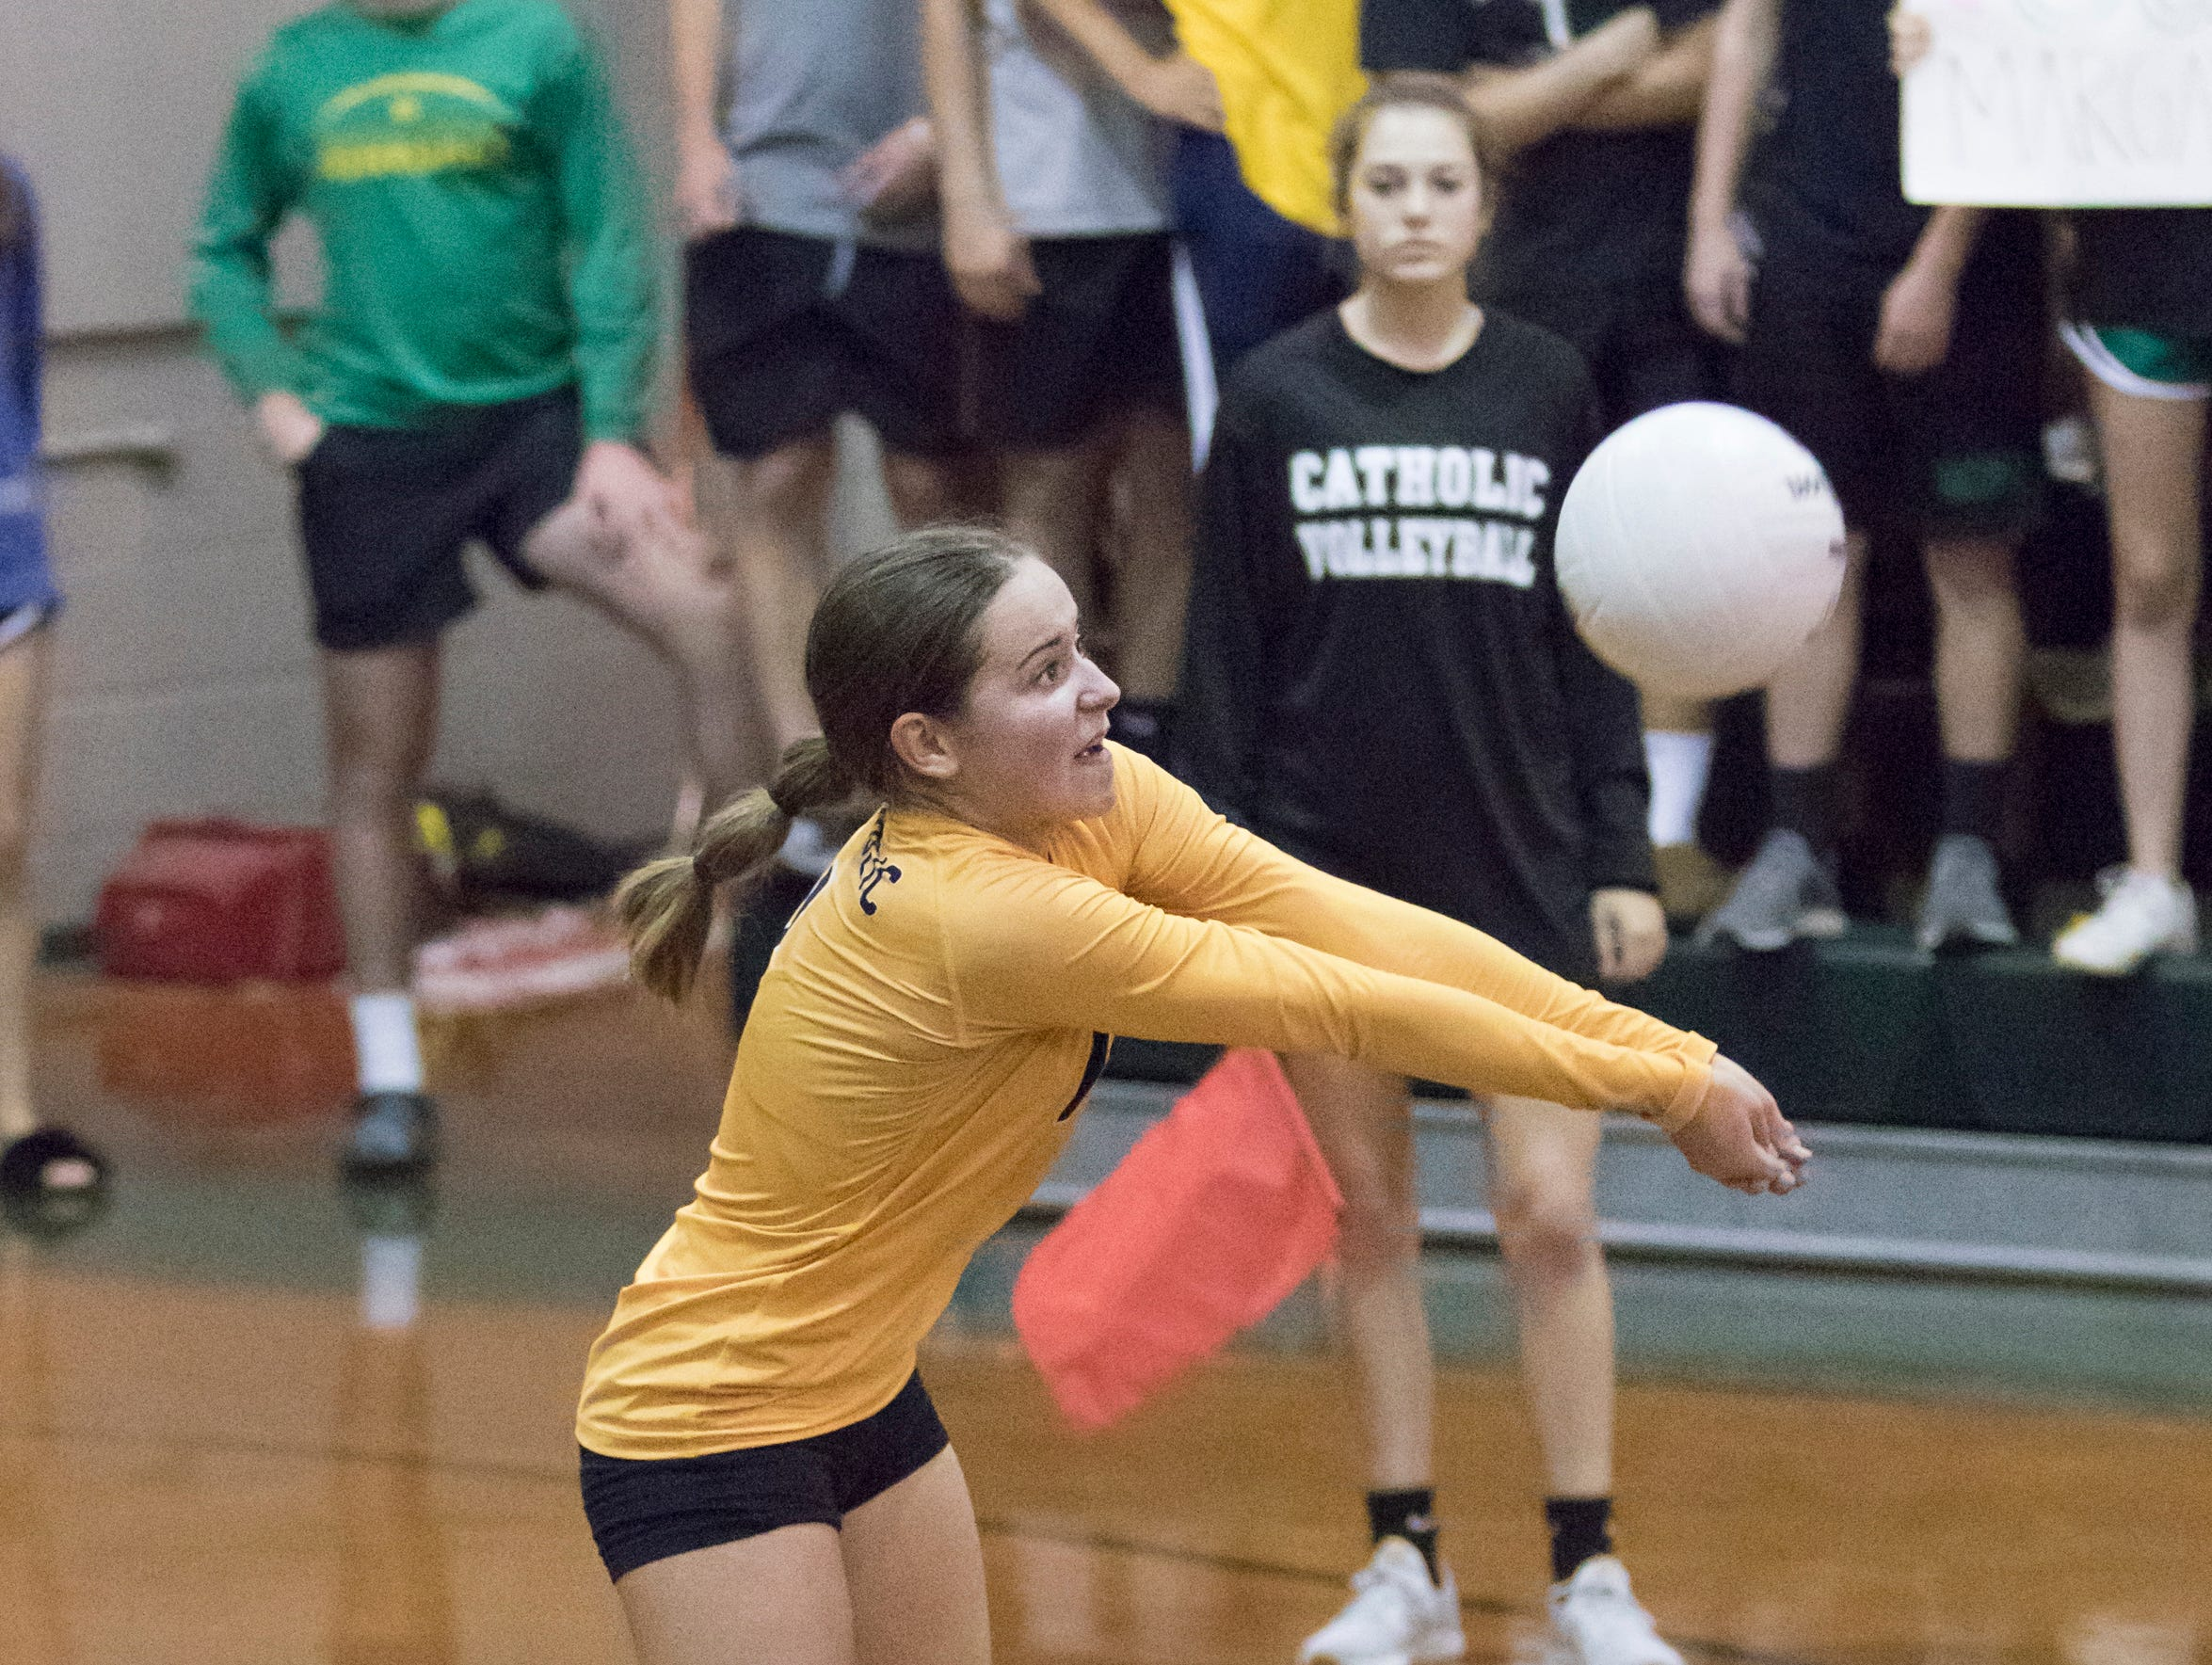 Madison Galloway (1) hits the ball during the Gulf Breeze vs Catholic volleyball match at Pensacola Catholic High School on Thursday, October 11, 2018.